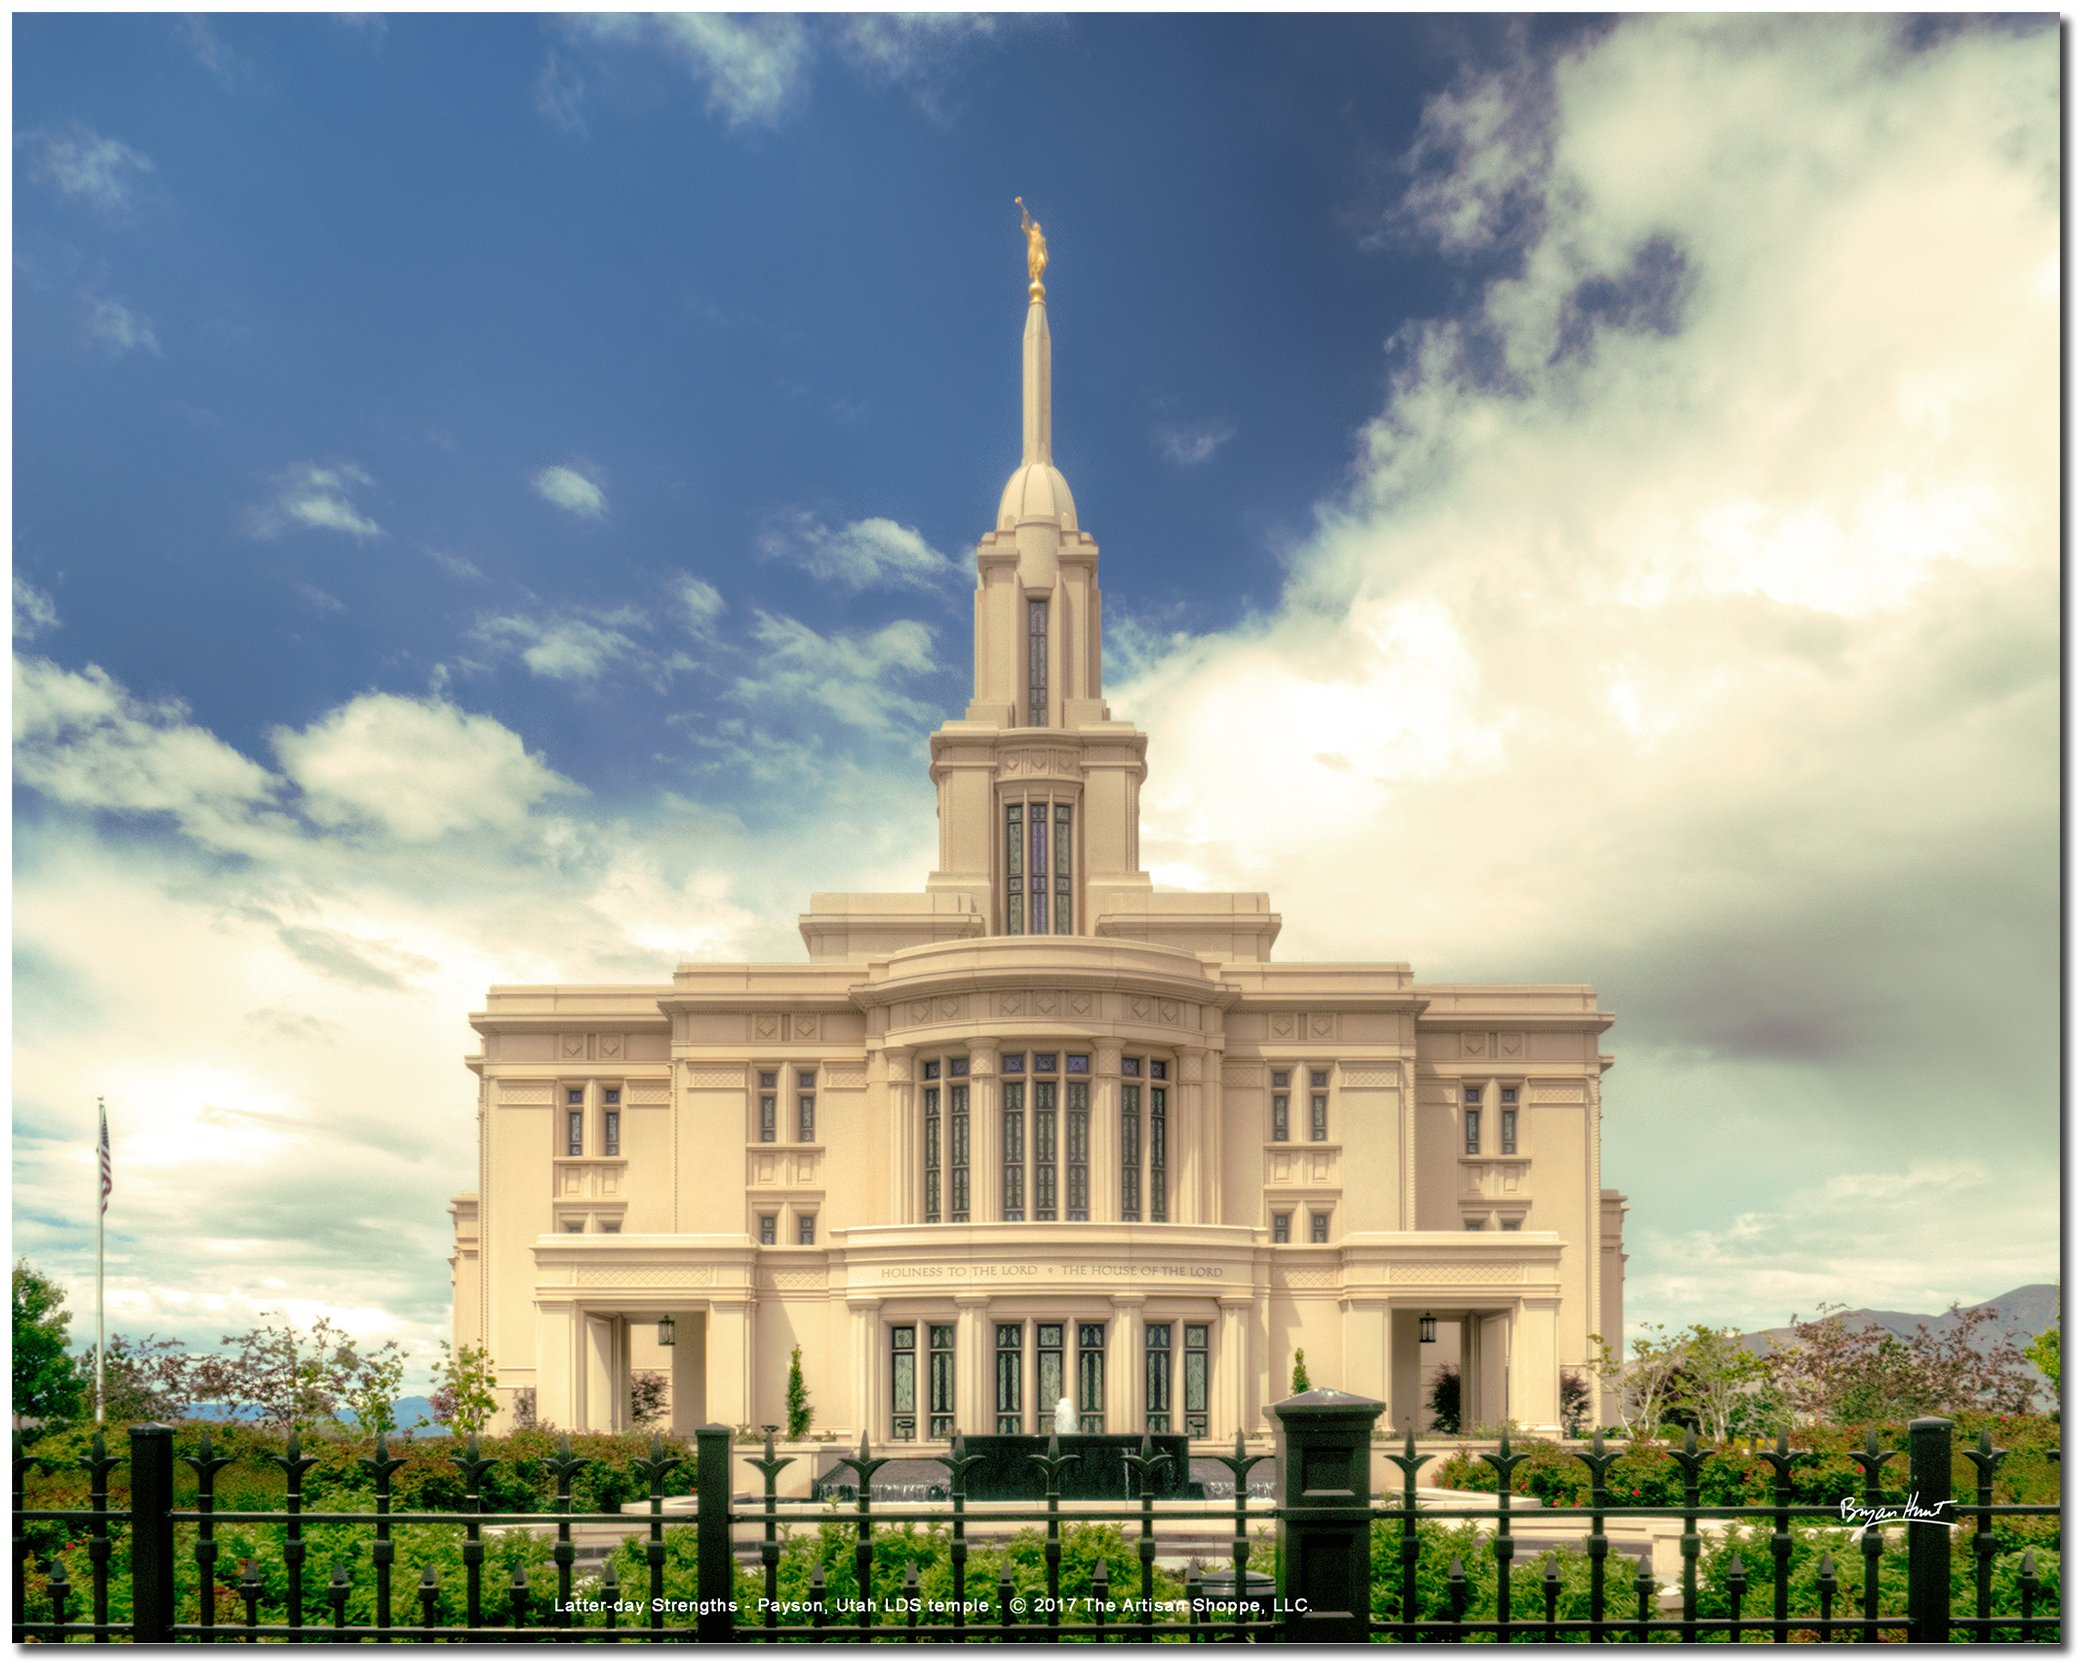 Latter-day Strengths PAYSON UTAH BEAUTIFUL LDS temple - 10''x8'' print on Fujicolor Crystal Archive photo paper - Vibrant, Full-Color, High Resolution photograph (BEAUTIFUL 10x8 PRINT)